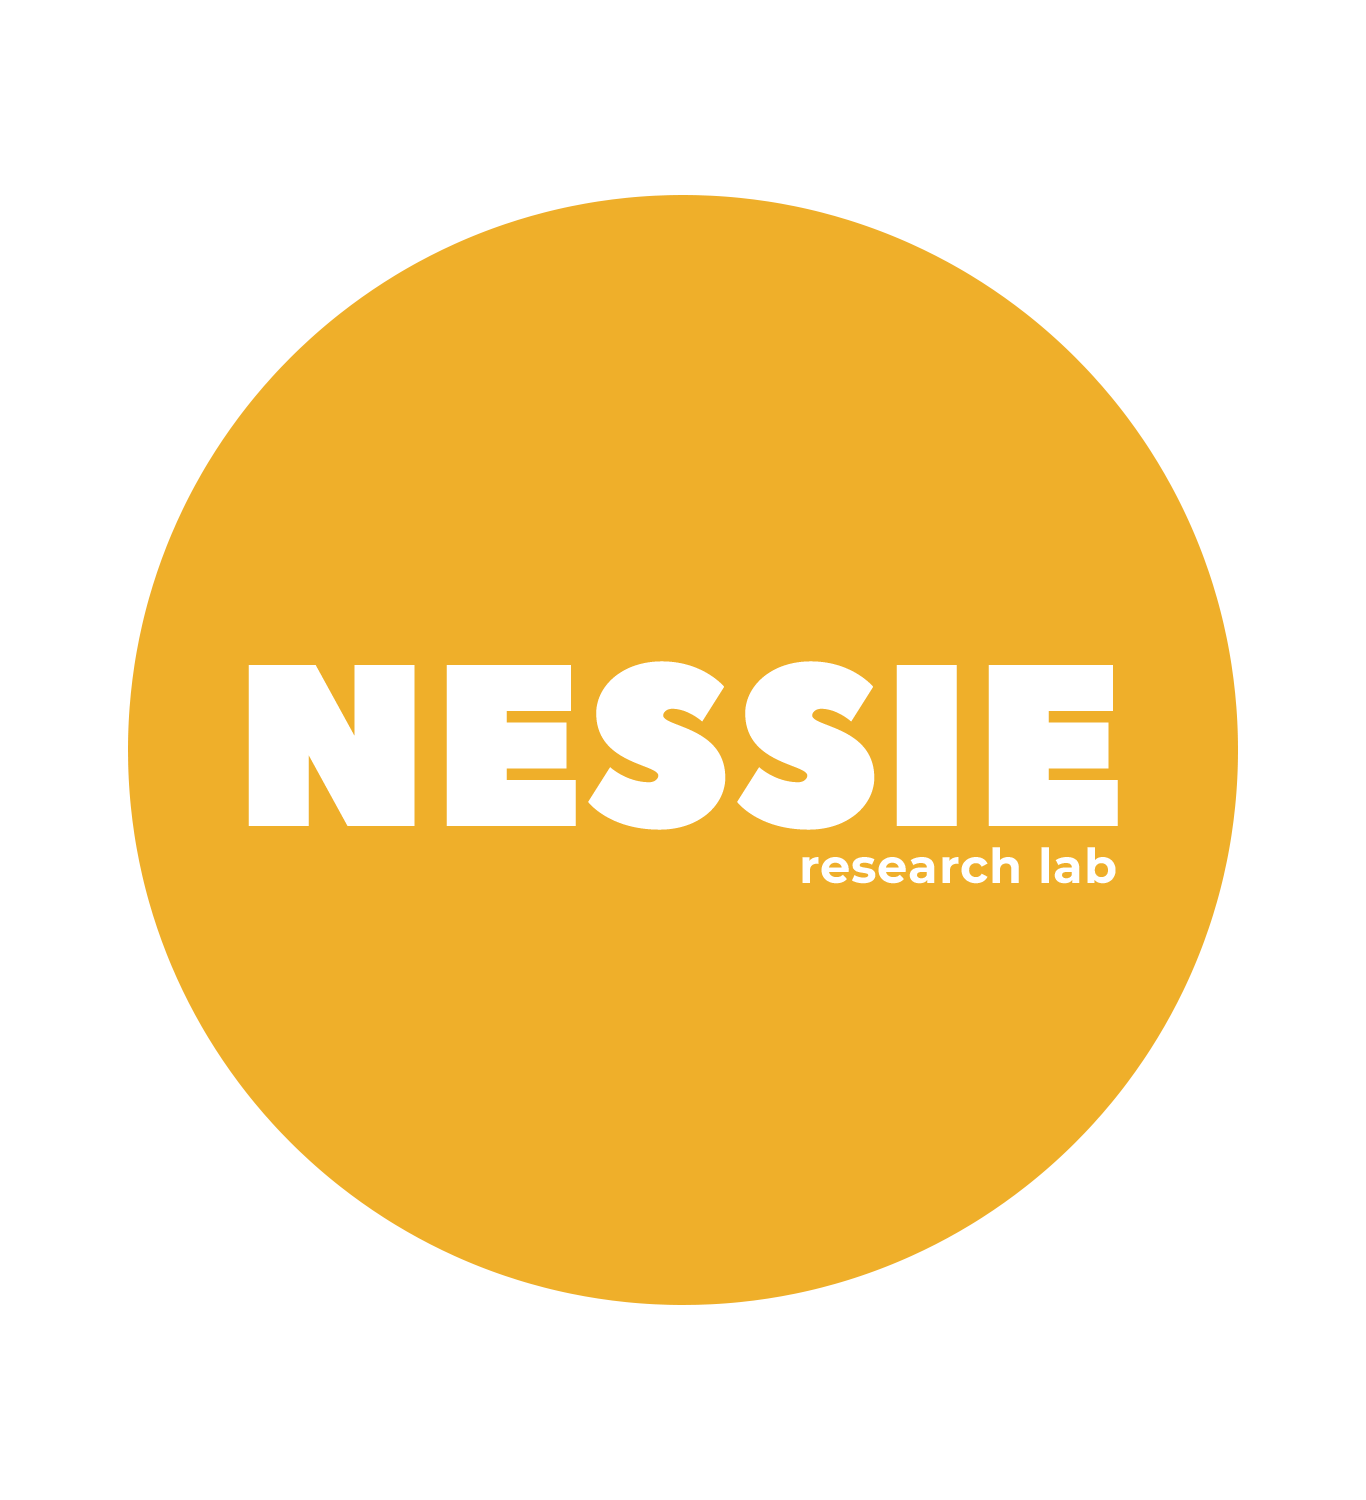 Nessie Research Lab